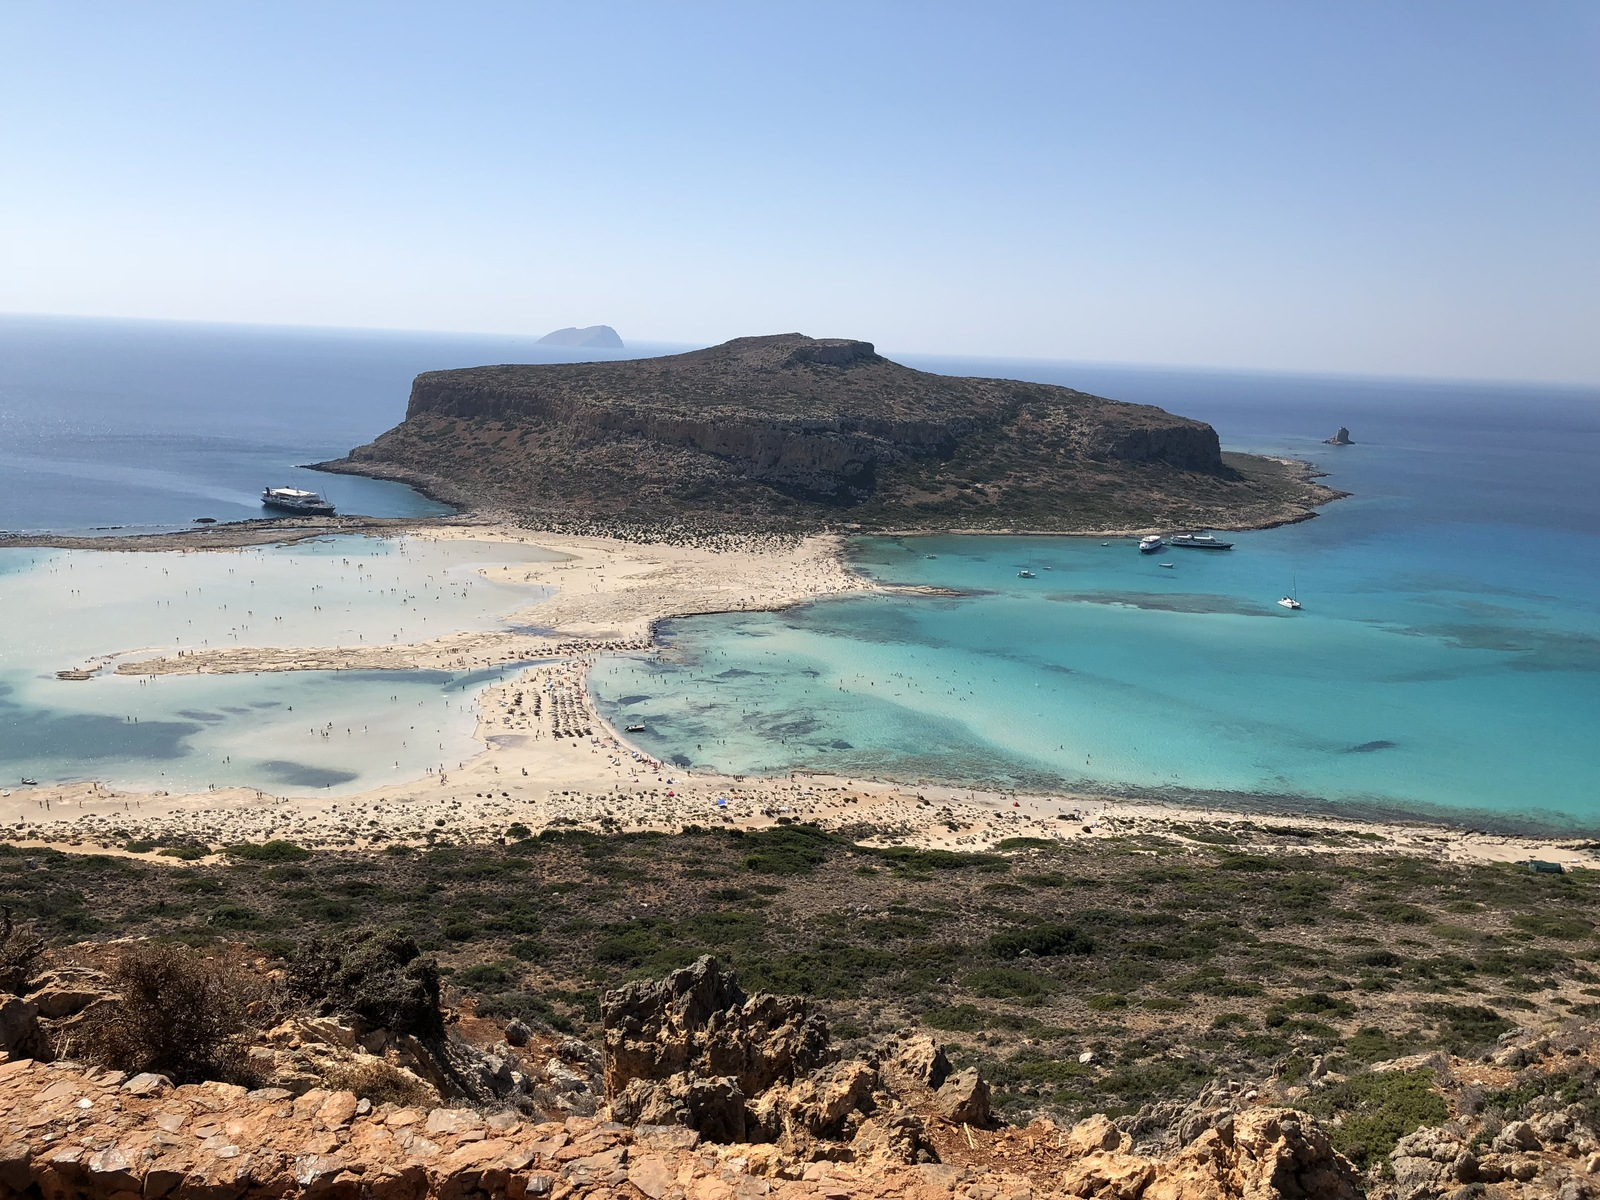 Sightseeing place to visit in Crete Islands-Balos Lagoon